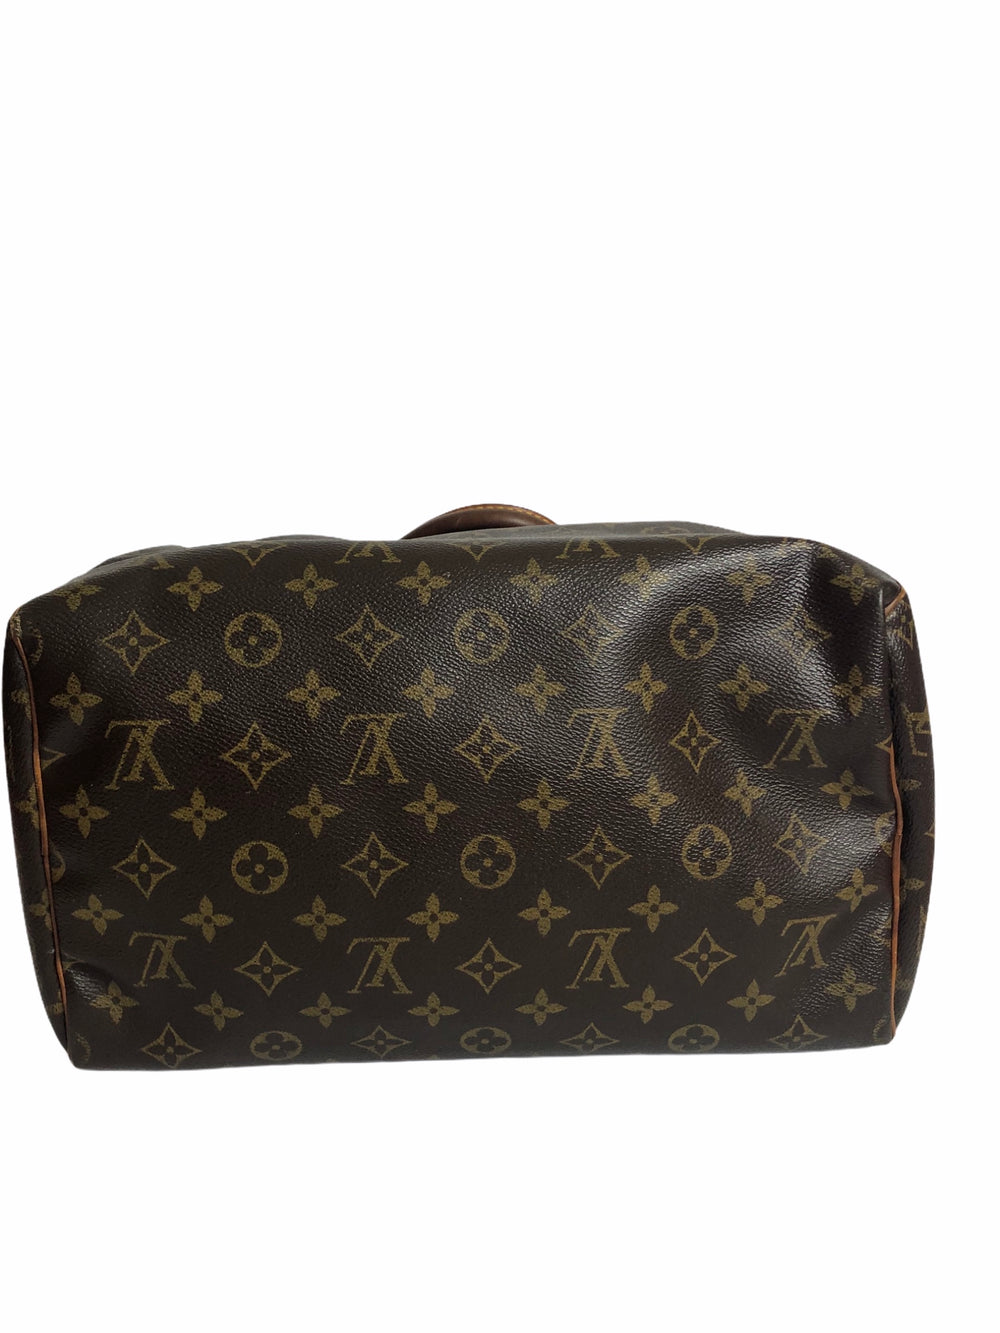 "Louis Vuitton Monogram Canvas ""Speedy 30""- As Seen on Instagram 19/11/20"